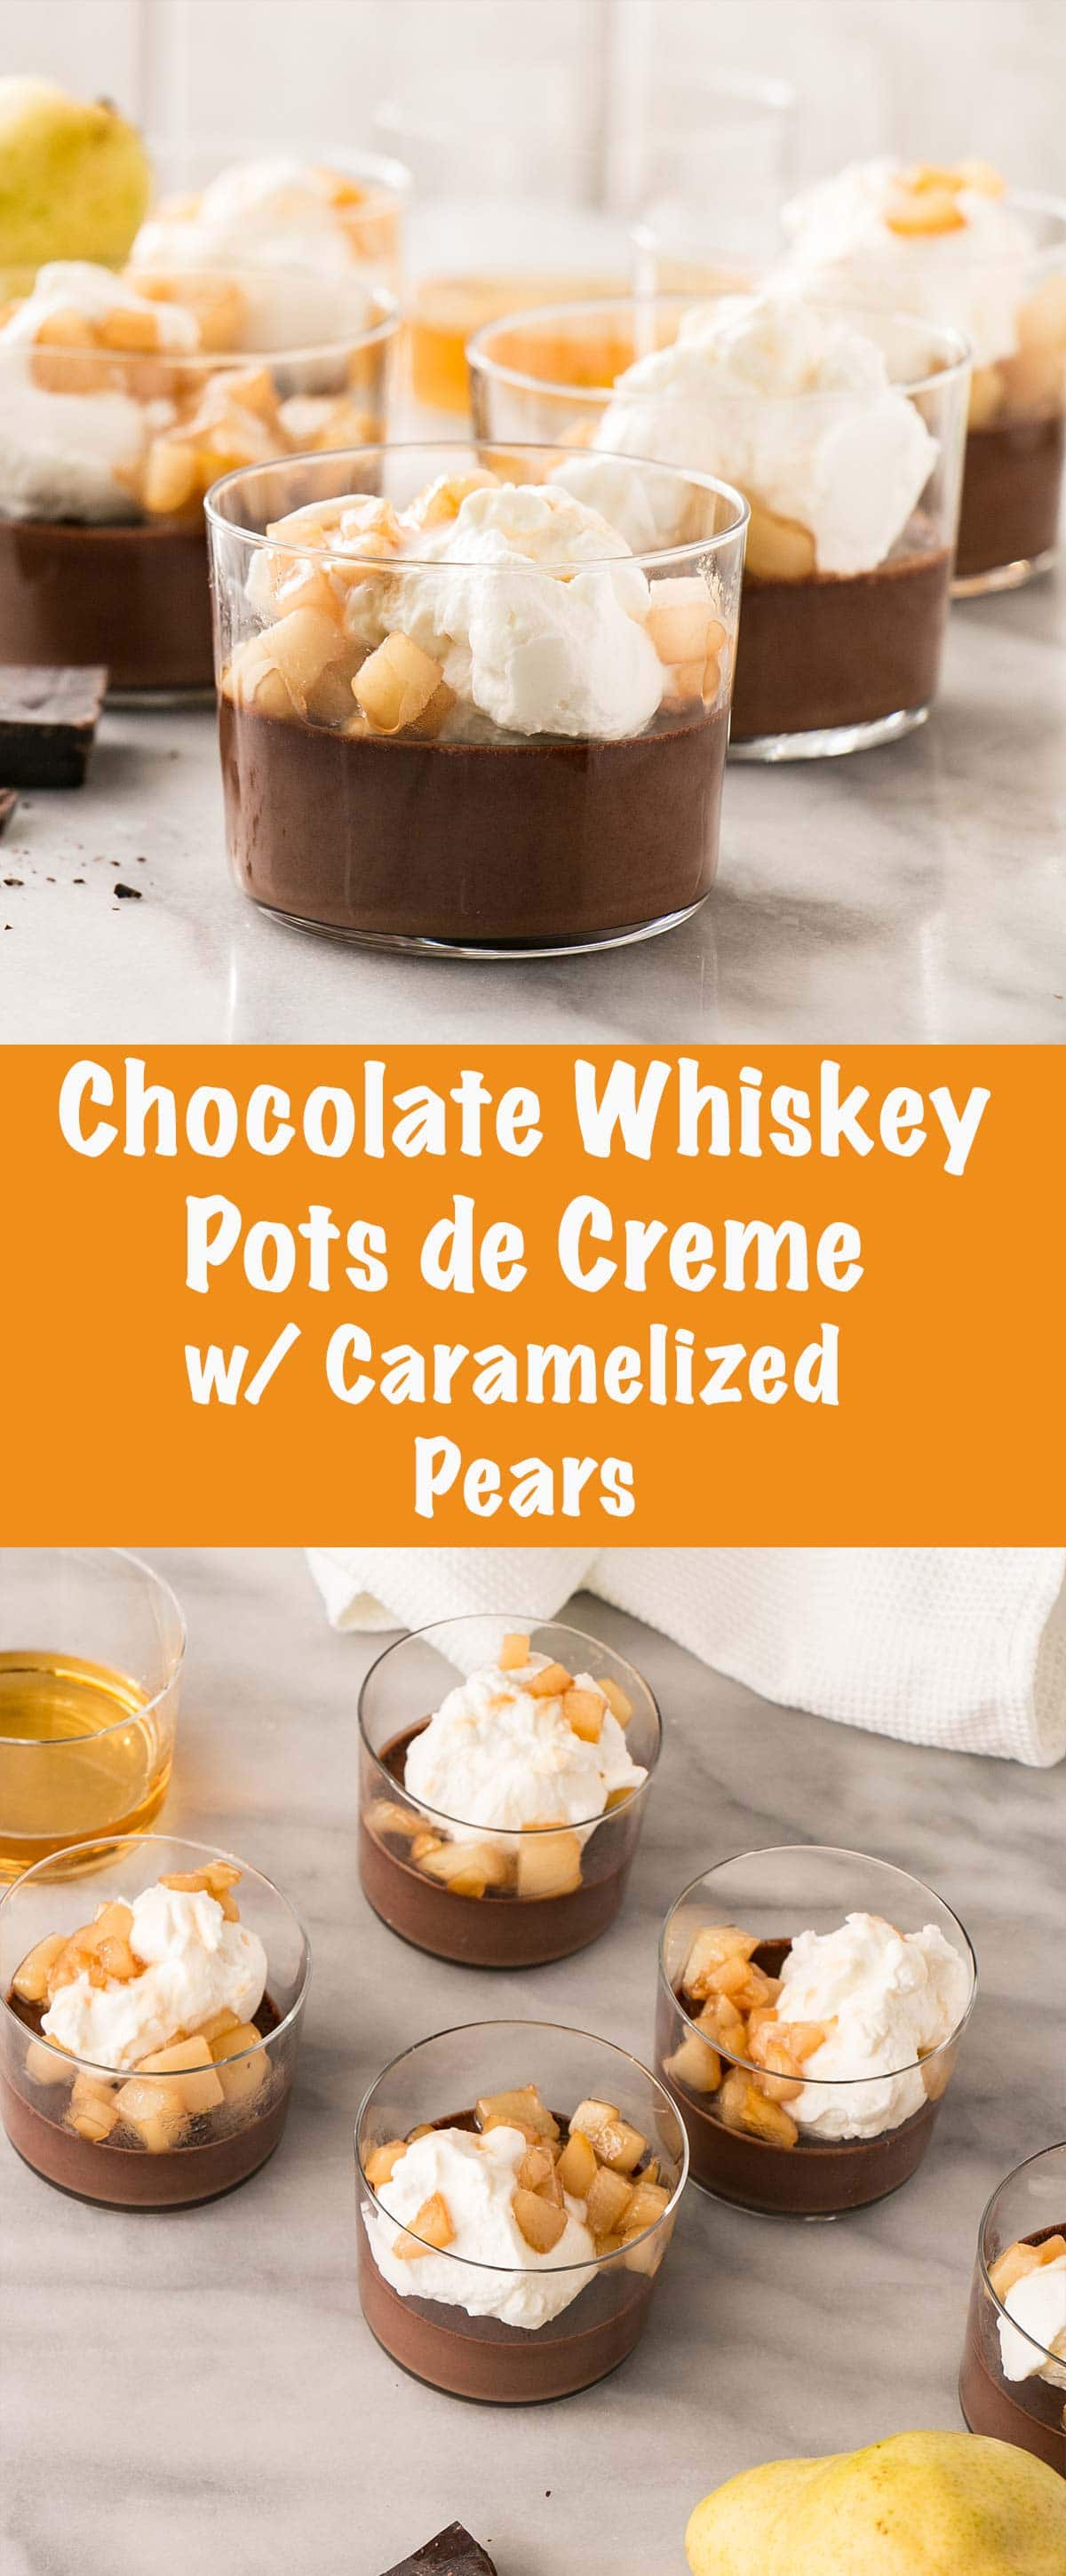 Chocolate Whiskey Pots de Creme with Caramelized Pears and Whipping Cream is an easy and decadent dessert to prepare for date night or make ahead for a showstopper of a dinner party dessert. #datenight #chocolate #dessert